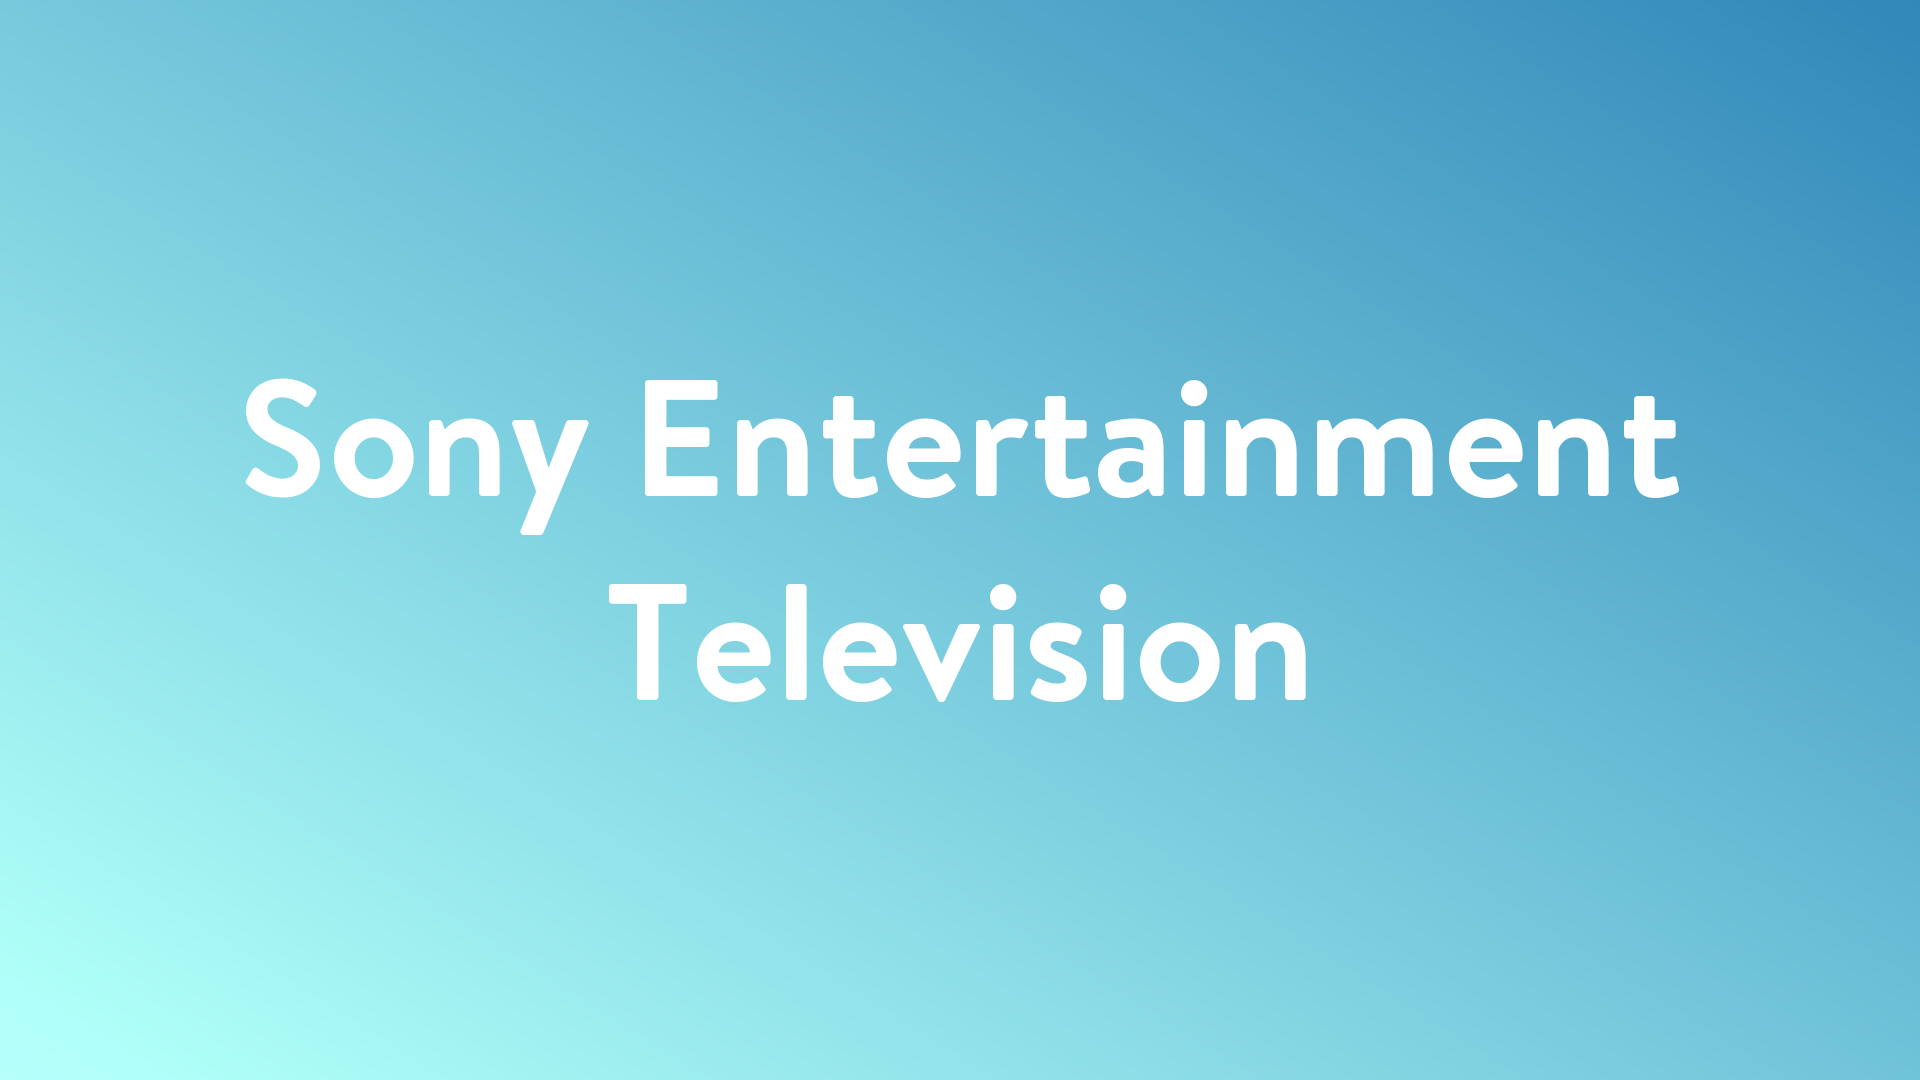 Stream And Watch Sony Entertainment Television Online Sling Tv